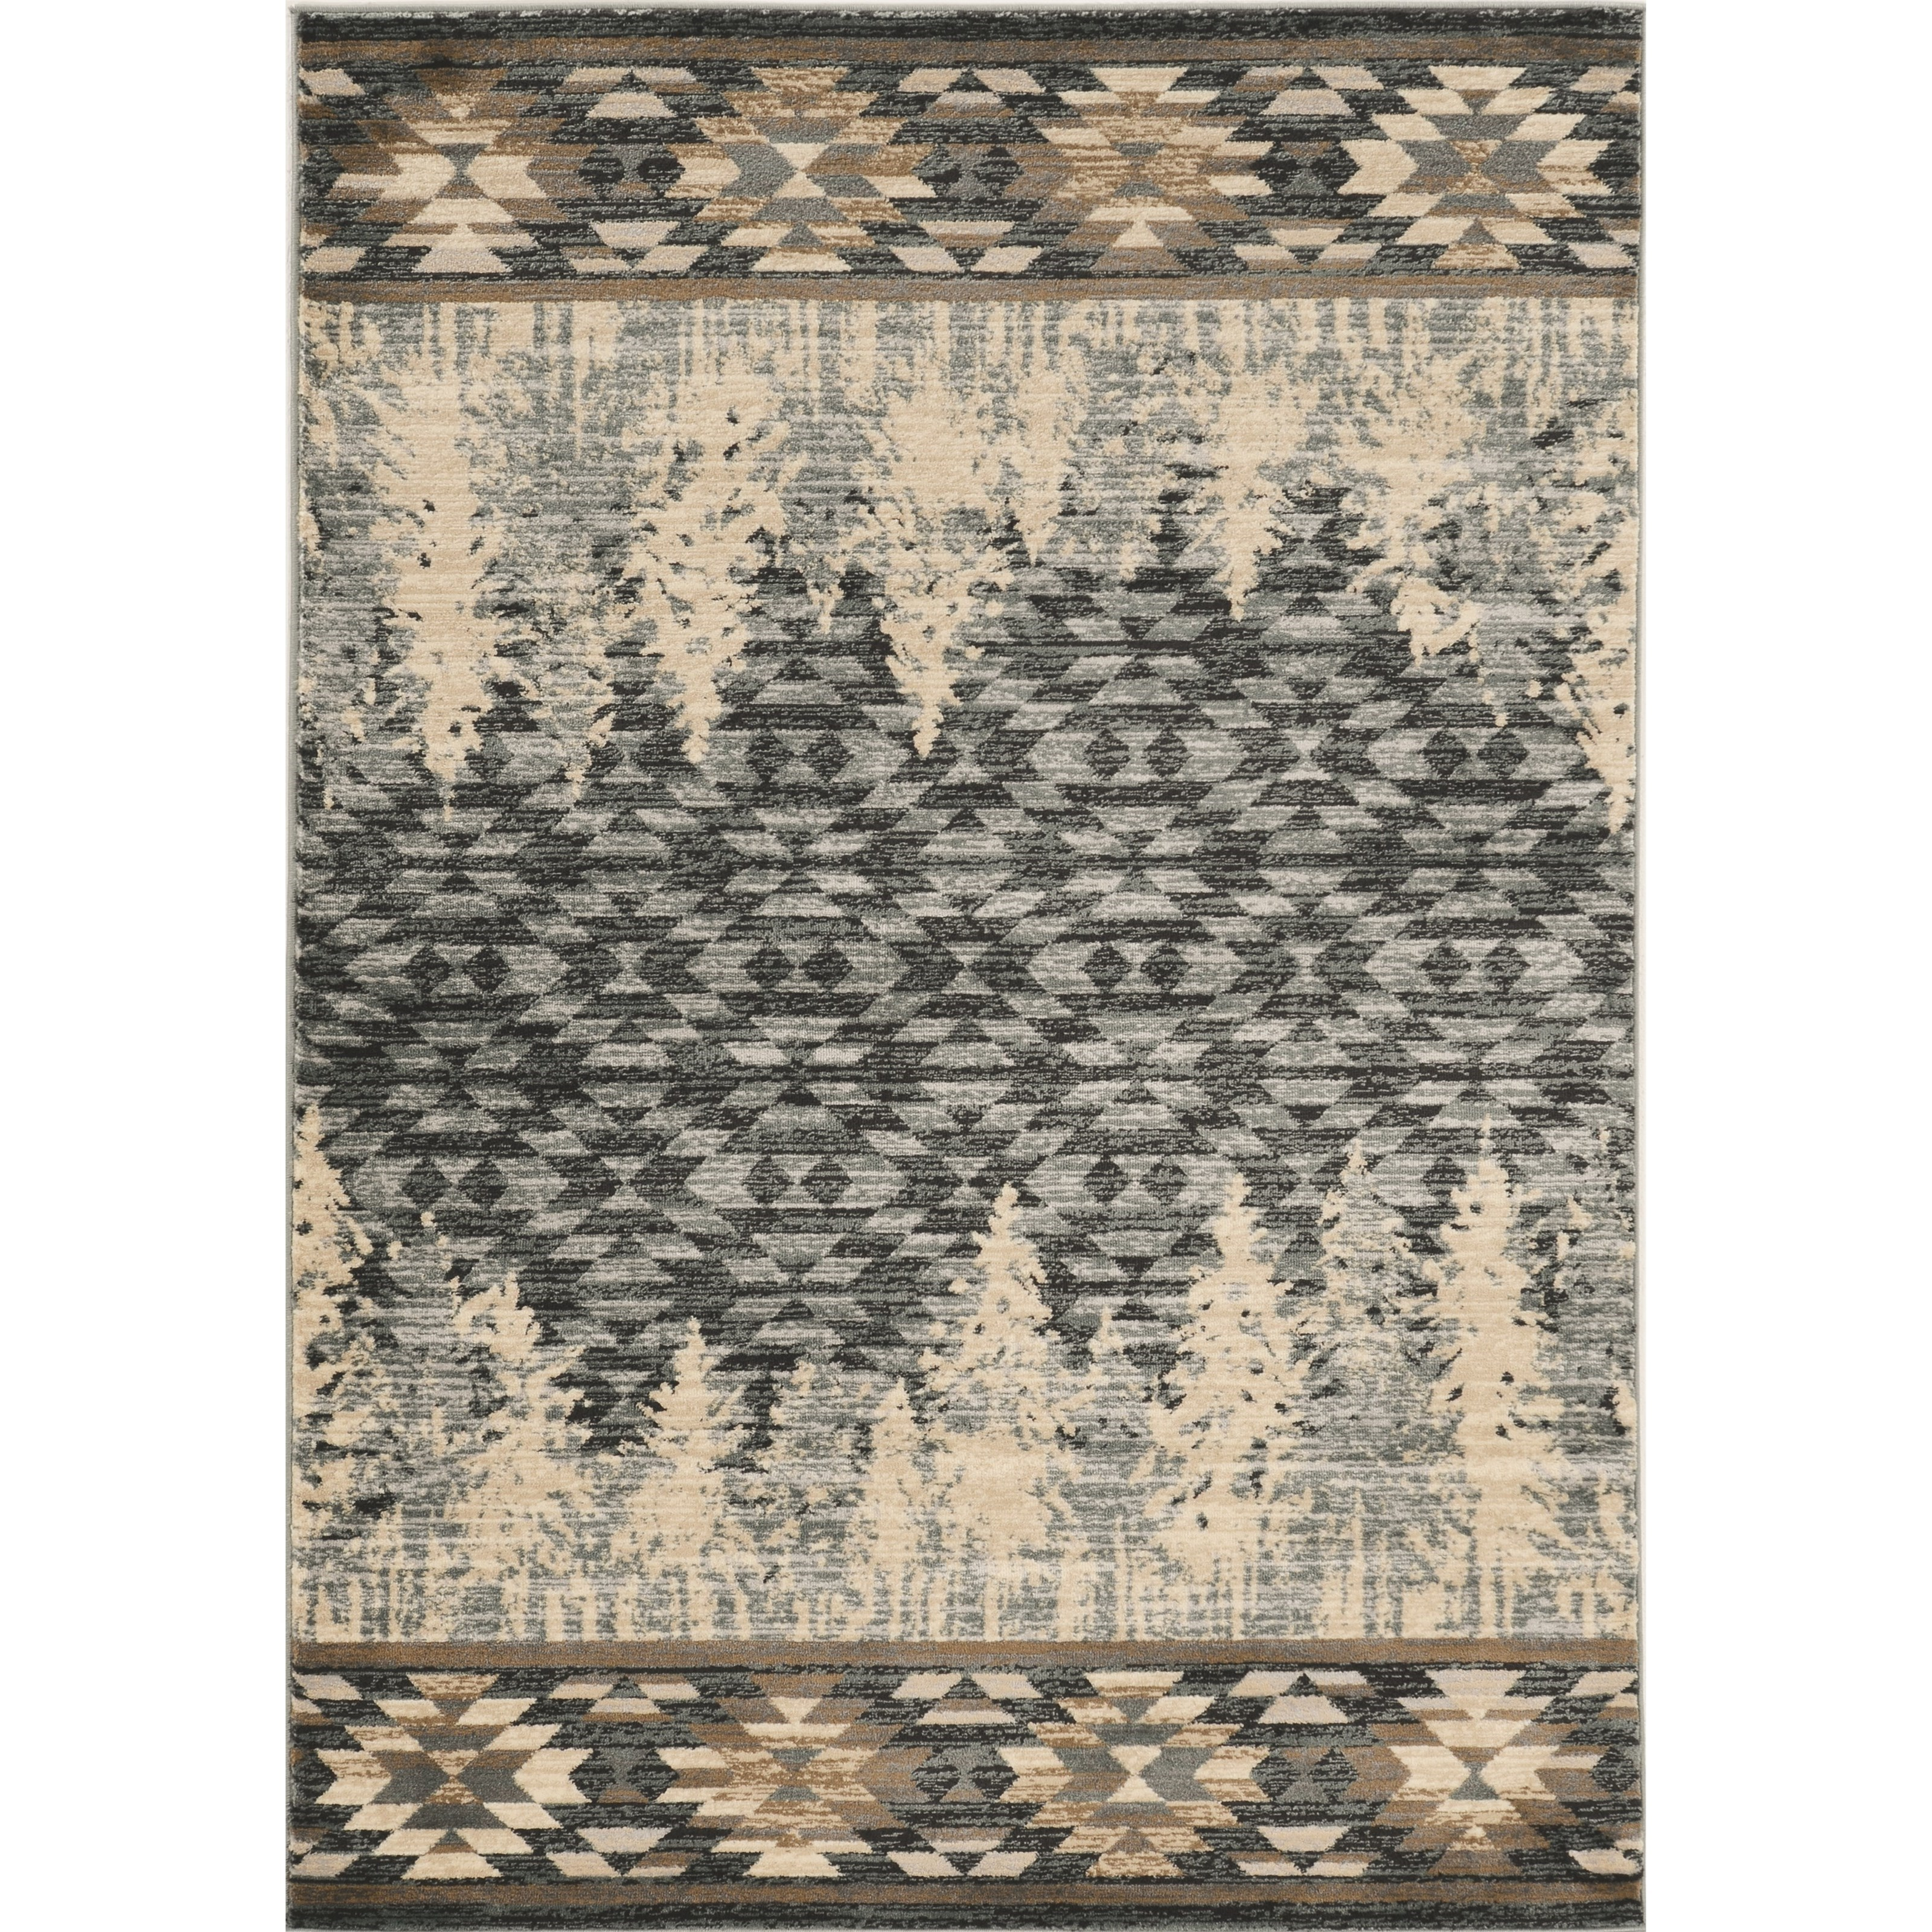 "7'10"" Round Slate Blue Pines Rug"